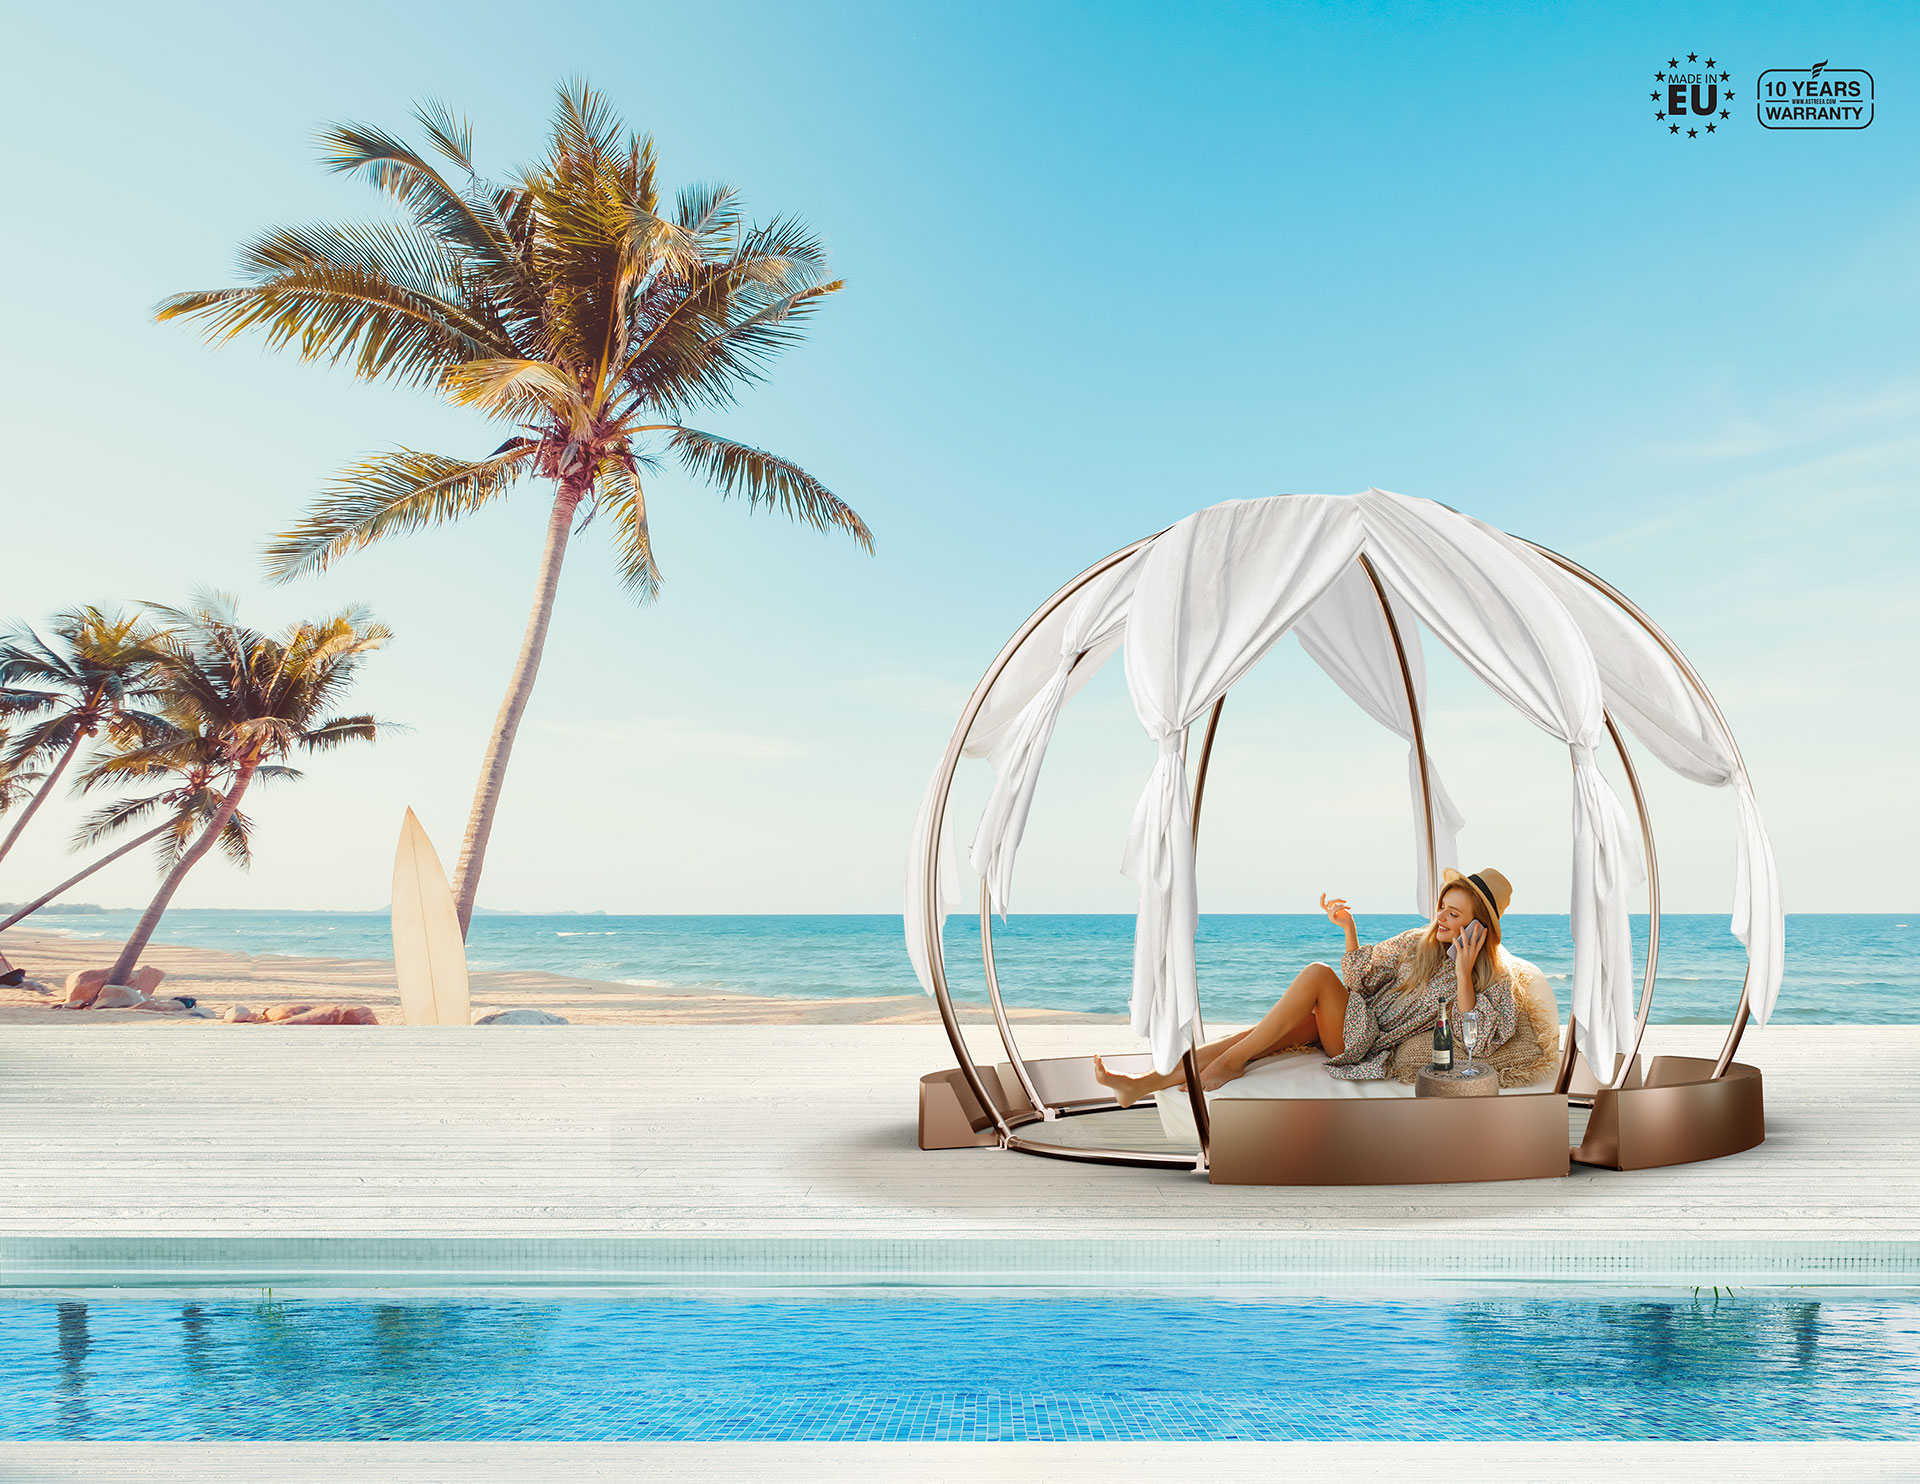 Introducing the Astreea Igloo accessories – built around safety and comfort